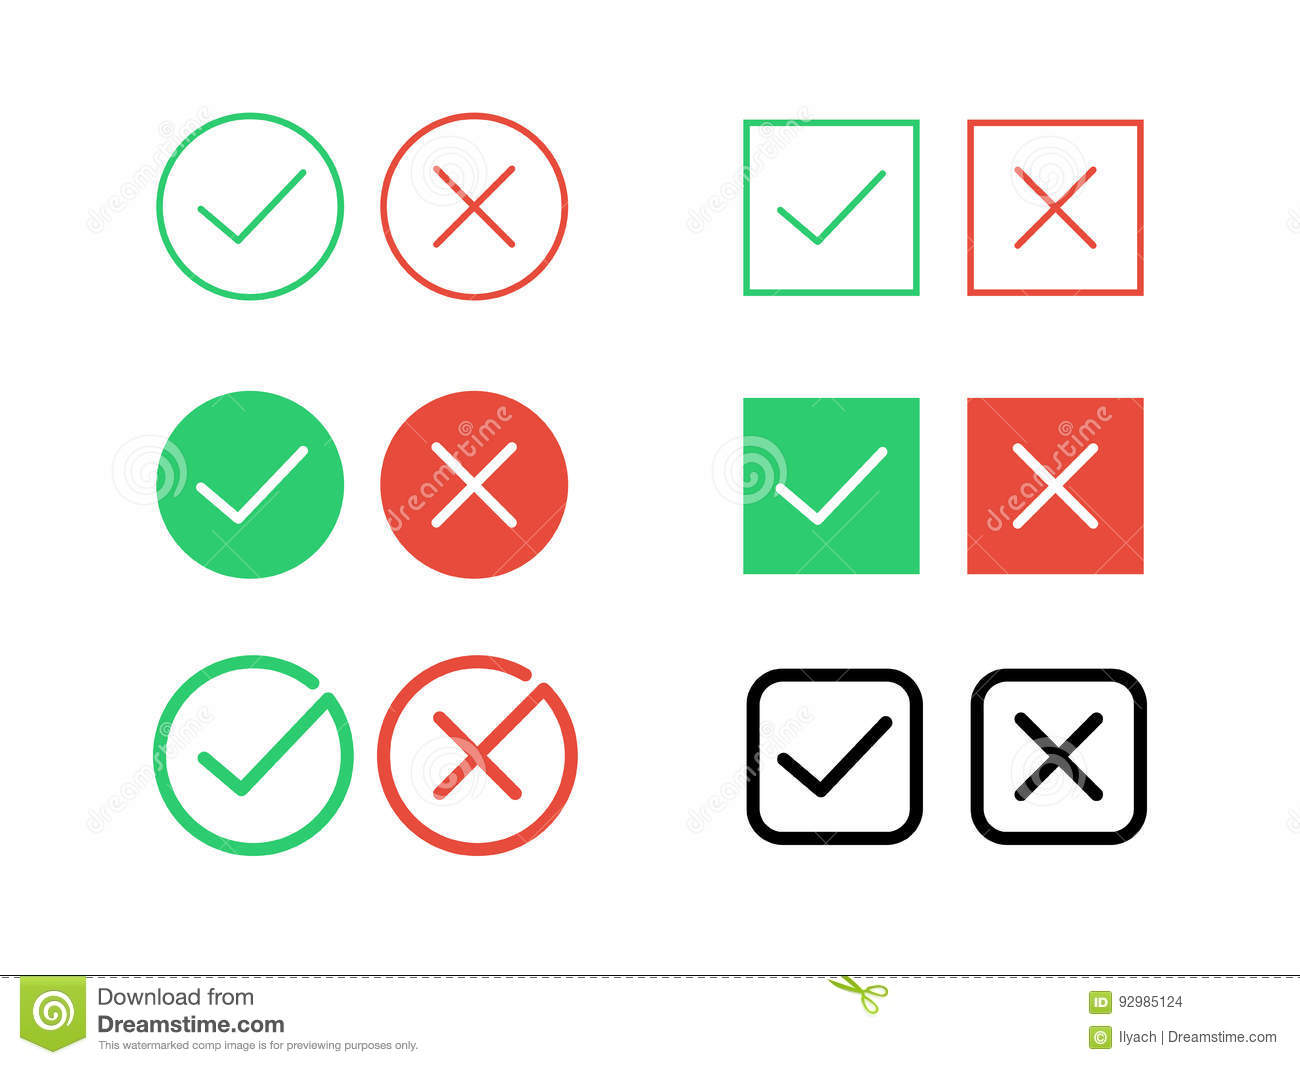 Tick check mark and decline cross vector icons for internet buttons